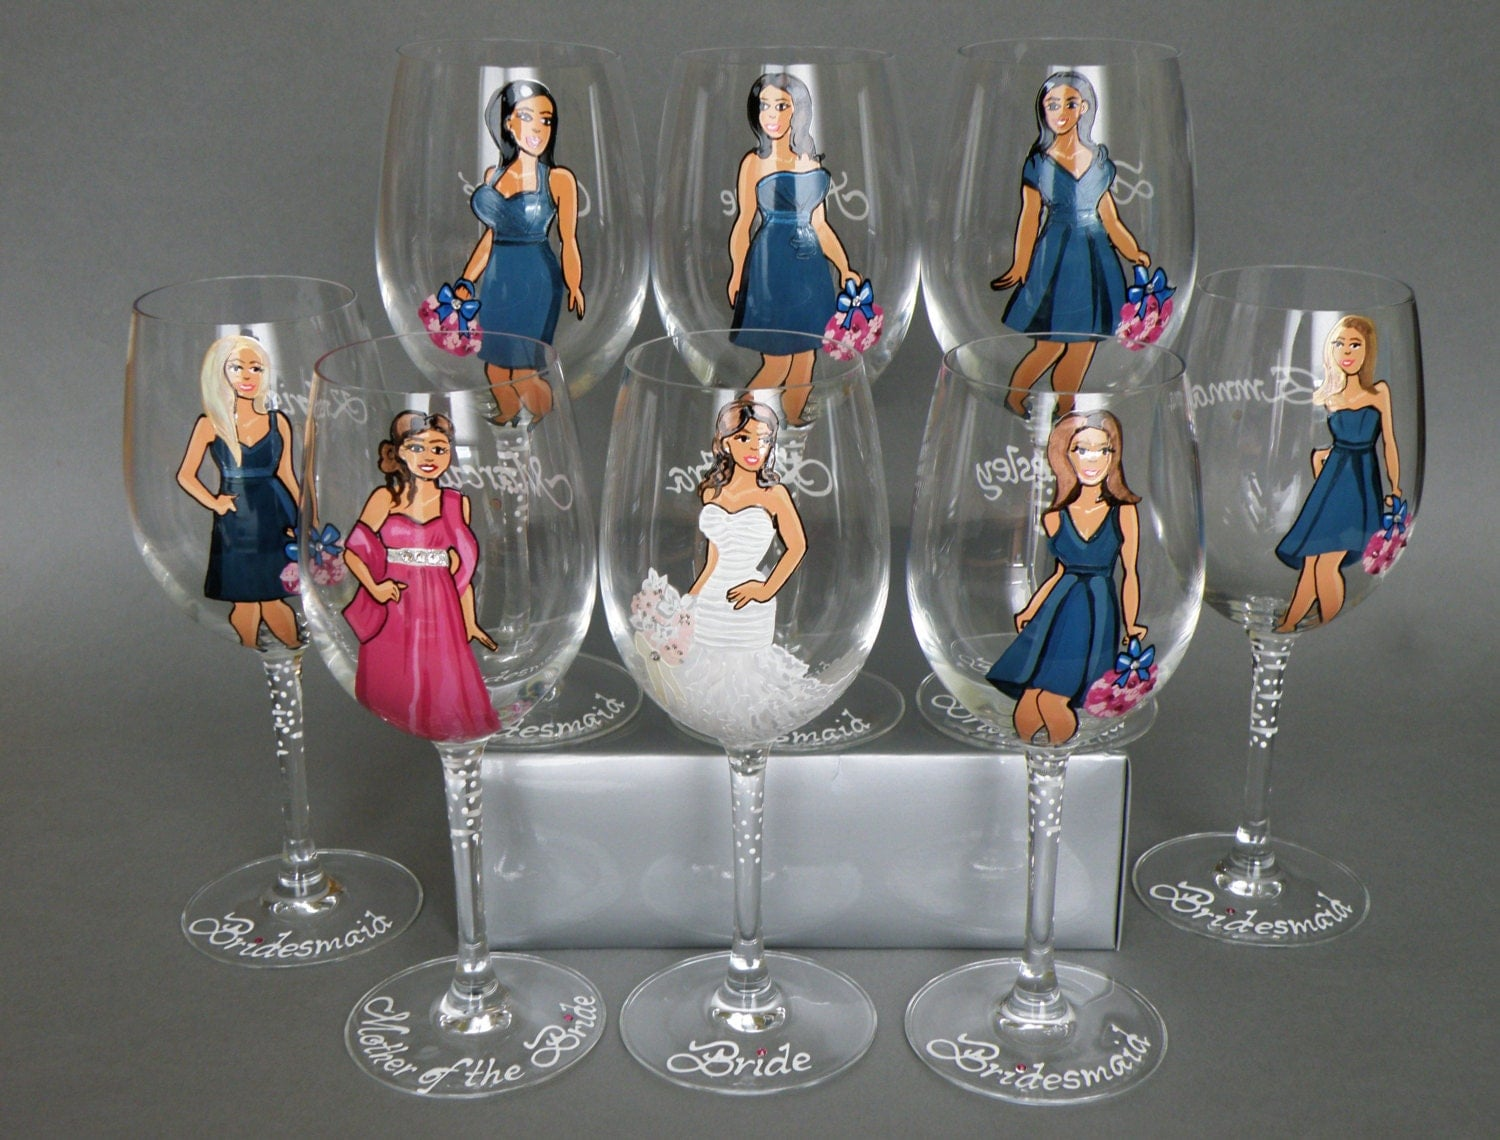 Wedding Party Gifts For Bridesmaids: Bridal Shower Party Bachelorette Party Bridesmaid Gifts